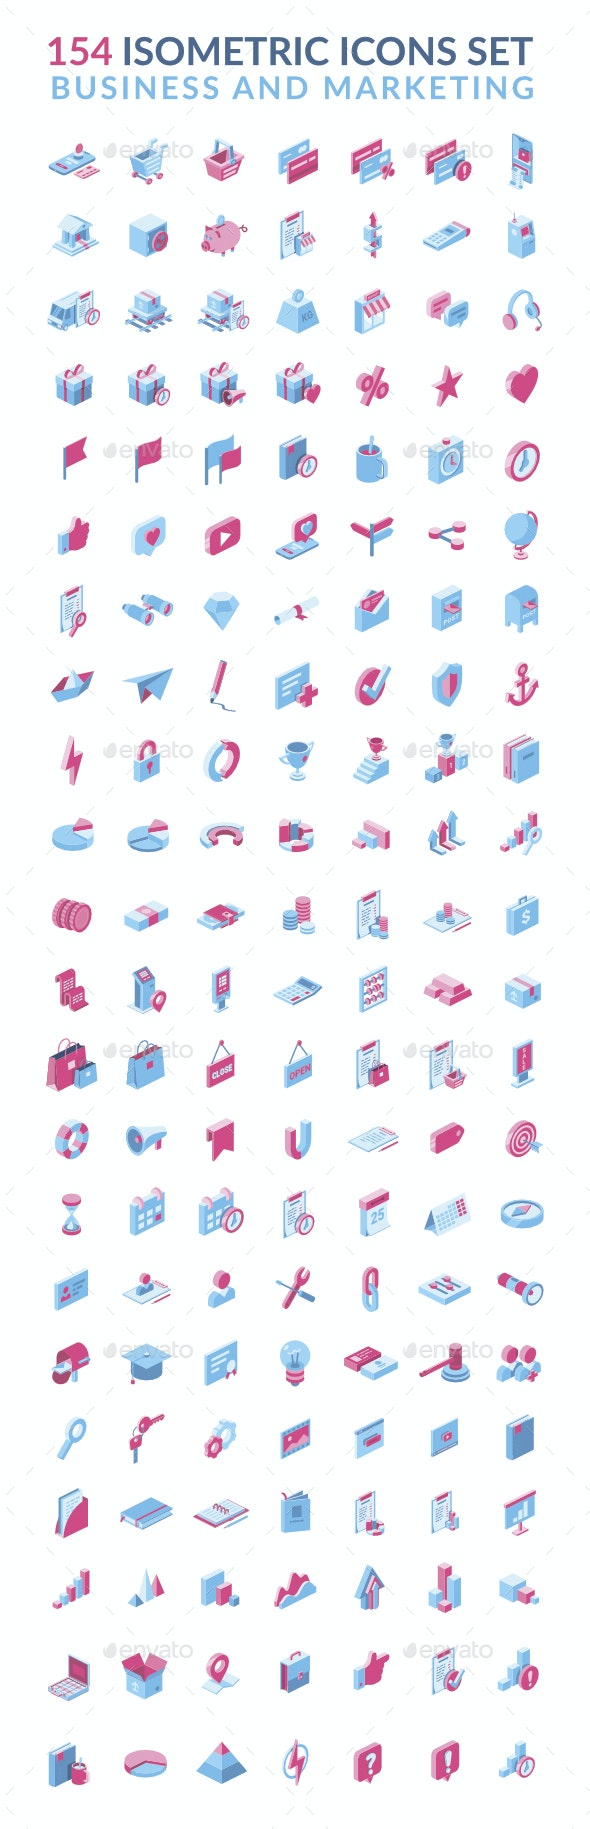 Business and Marketing 3D isometric icons set - Business Icons